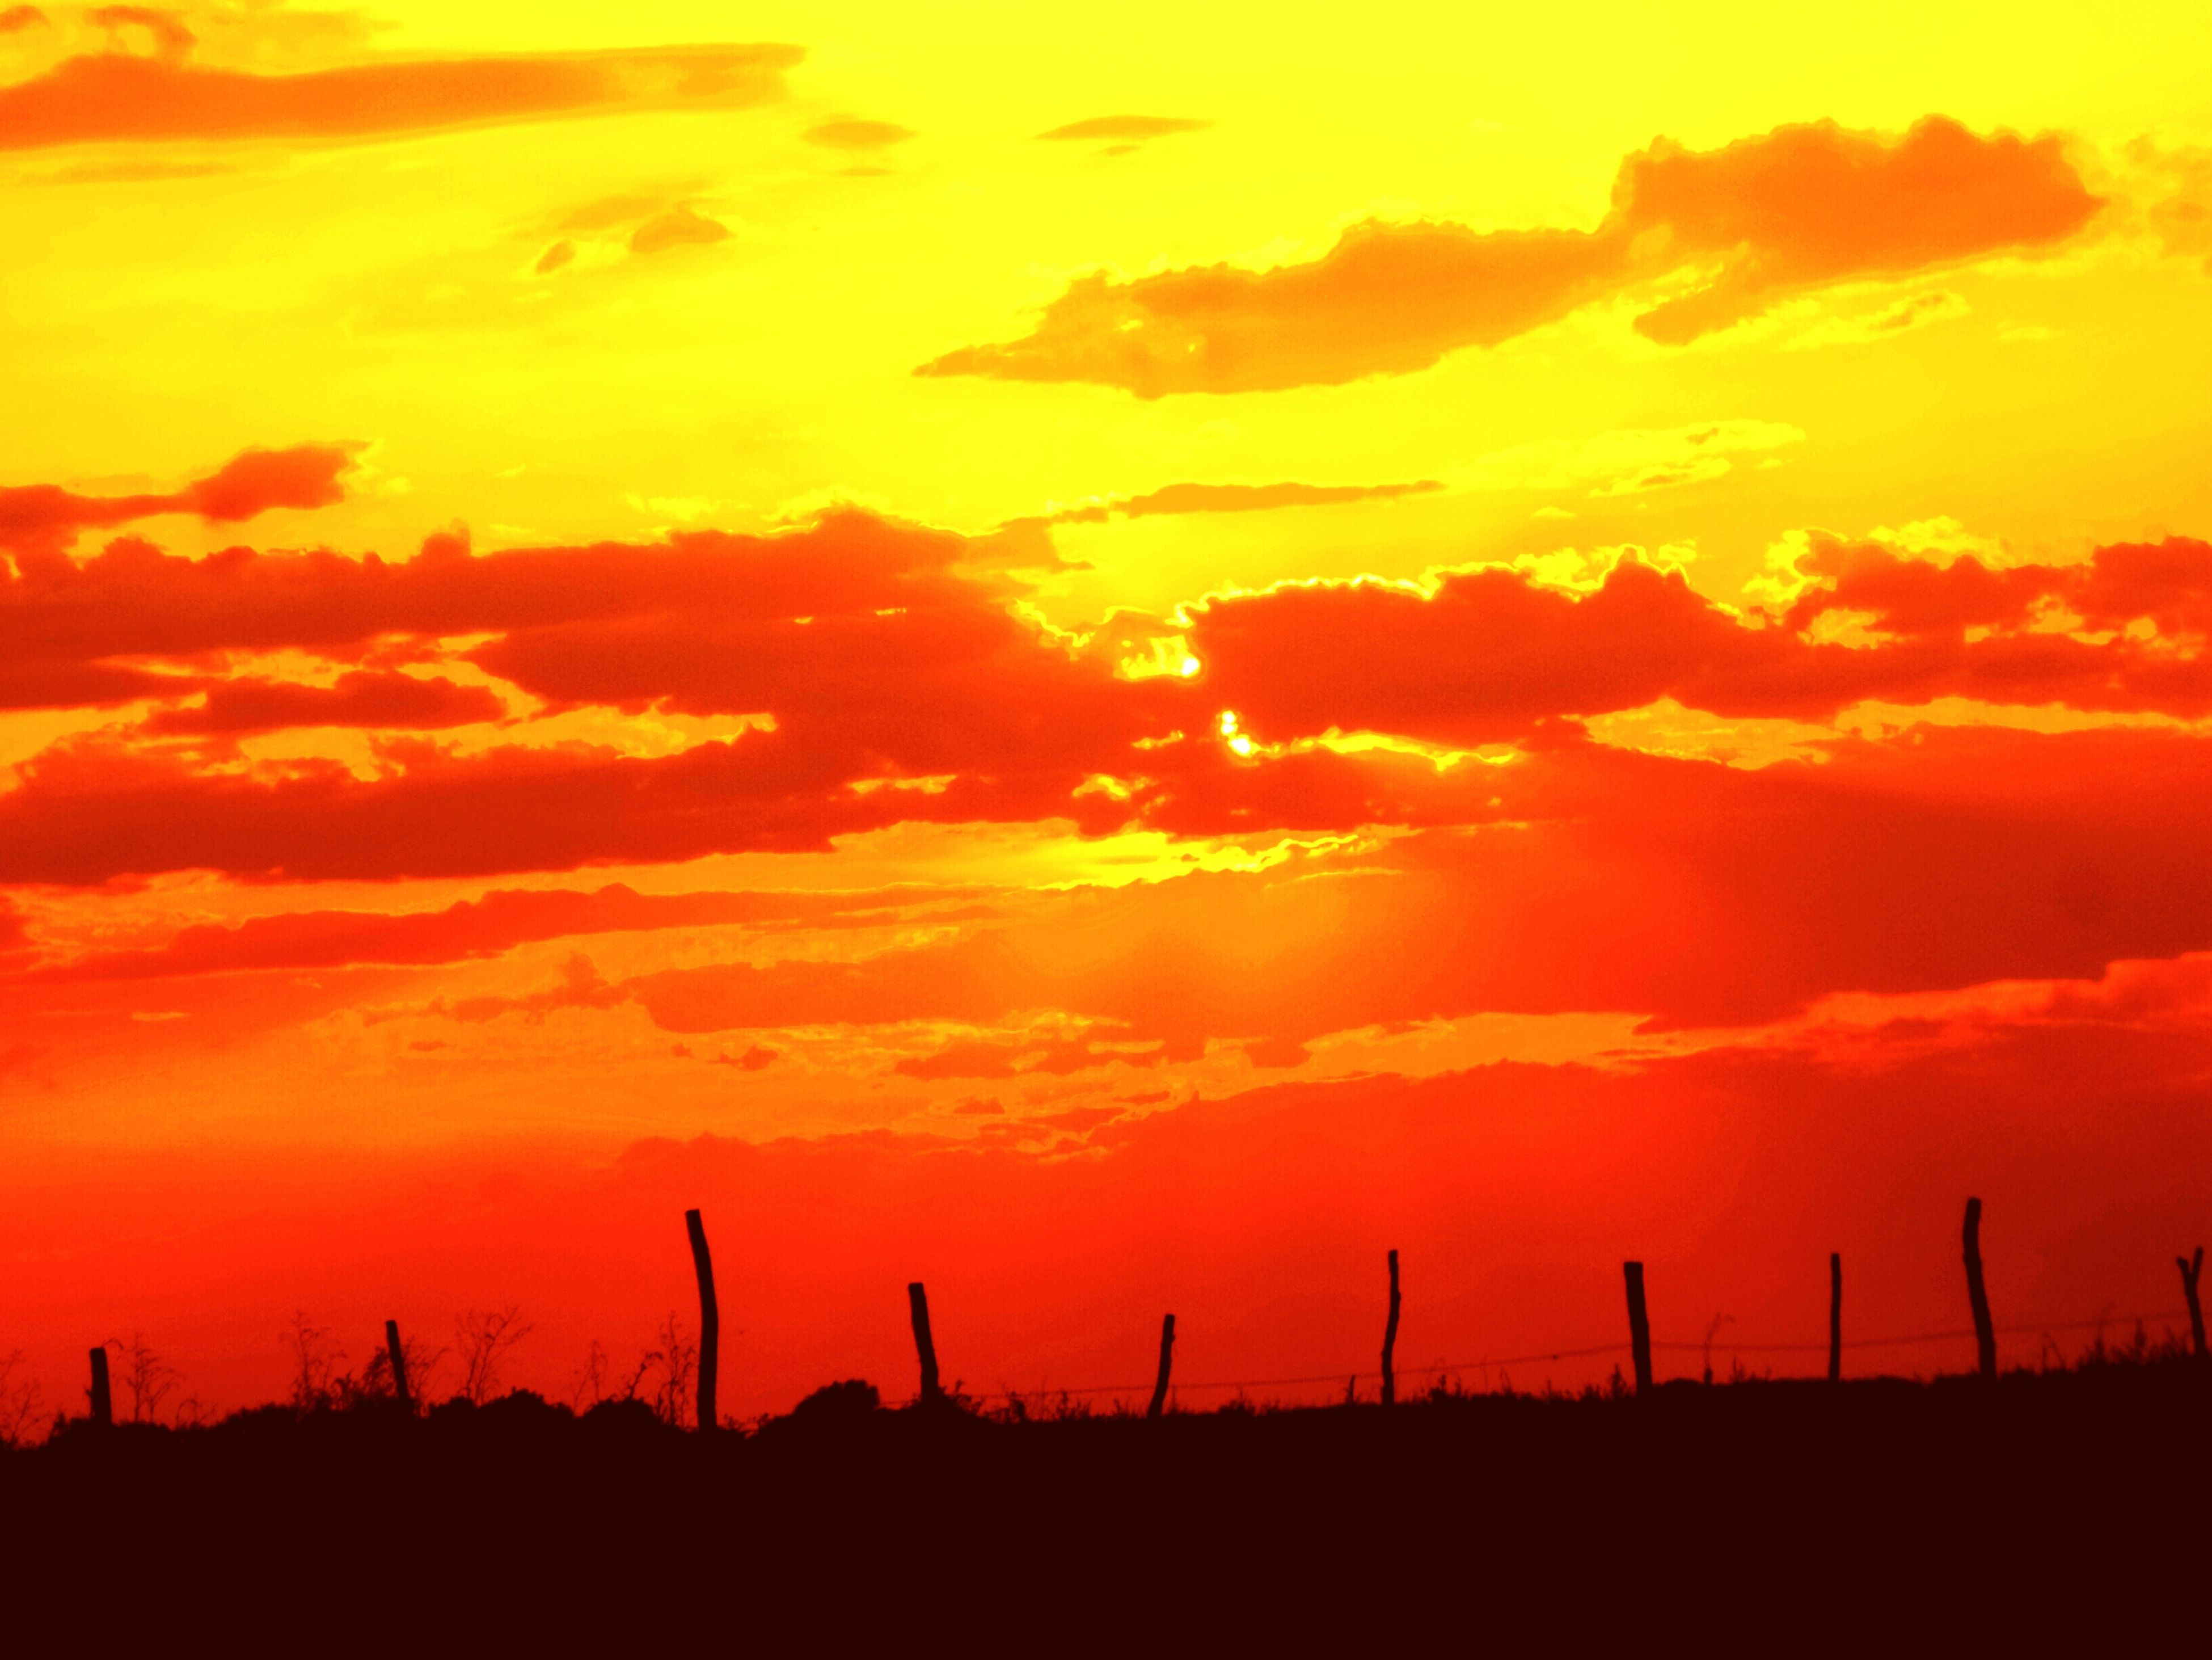 sunset, orange color, silhouette, sky, beauty in nature, scenics, tranquility, tranquil scene, landscape, nature, idyllic, dramatic sky, cloud - sky, field, windmill, alternative energy, cloud, environmental conservation, fuel and power generation, wind power